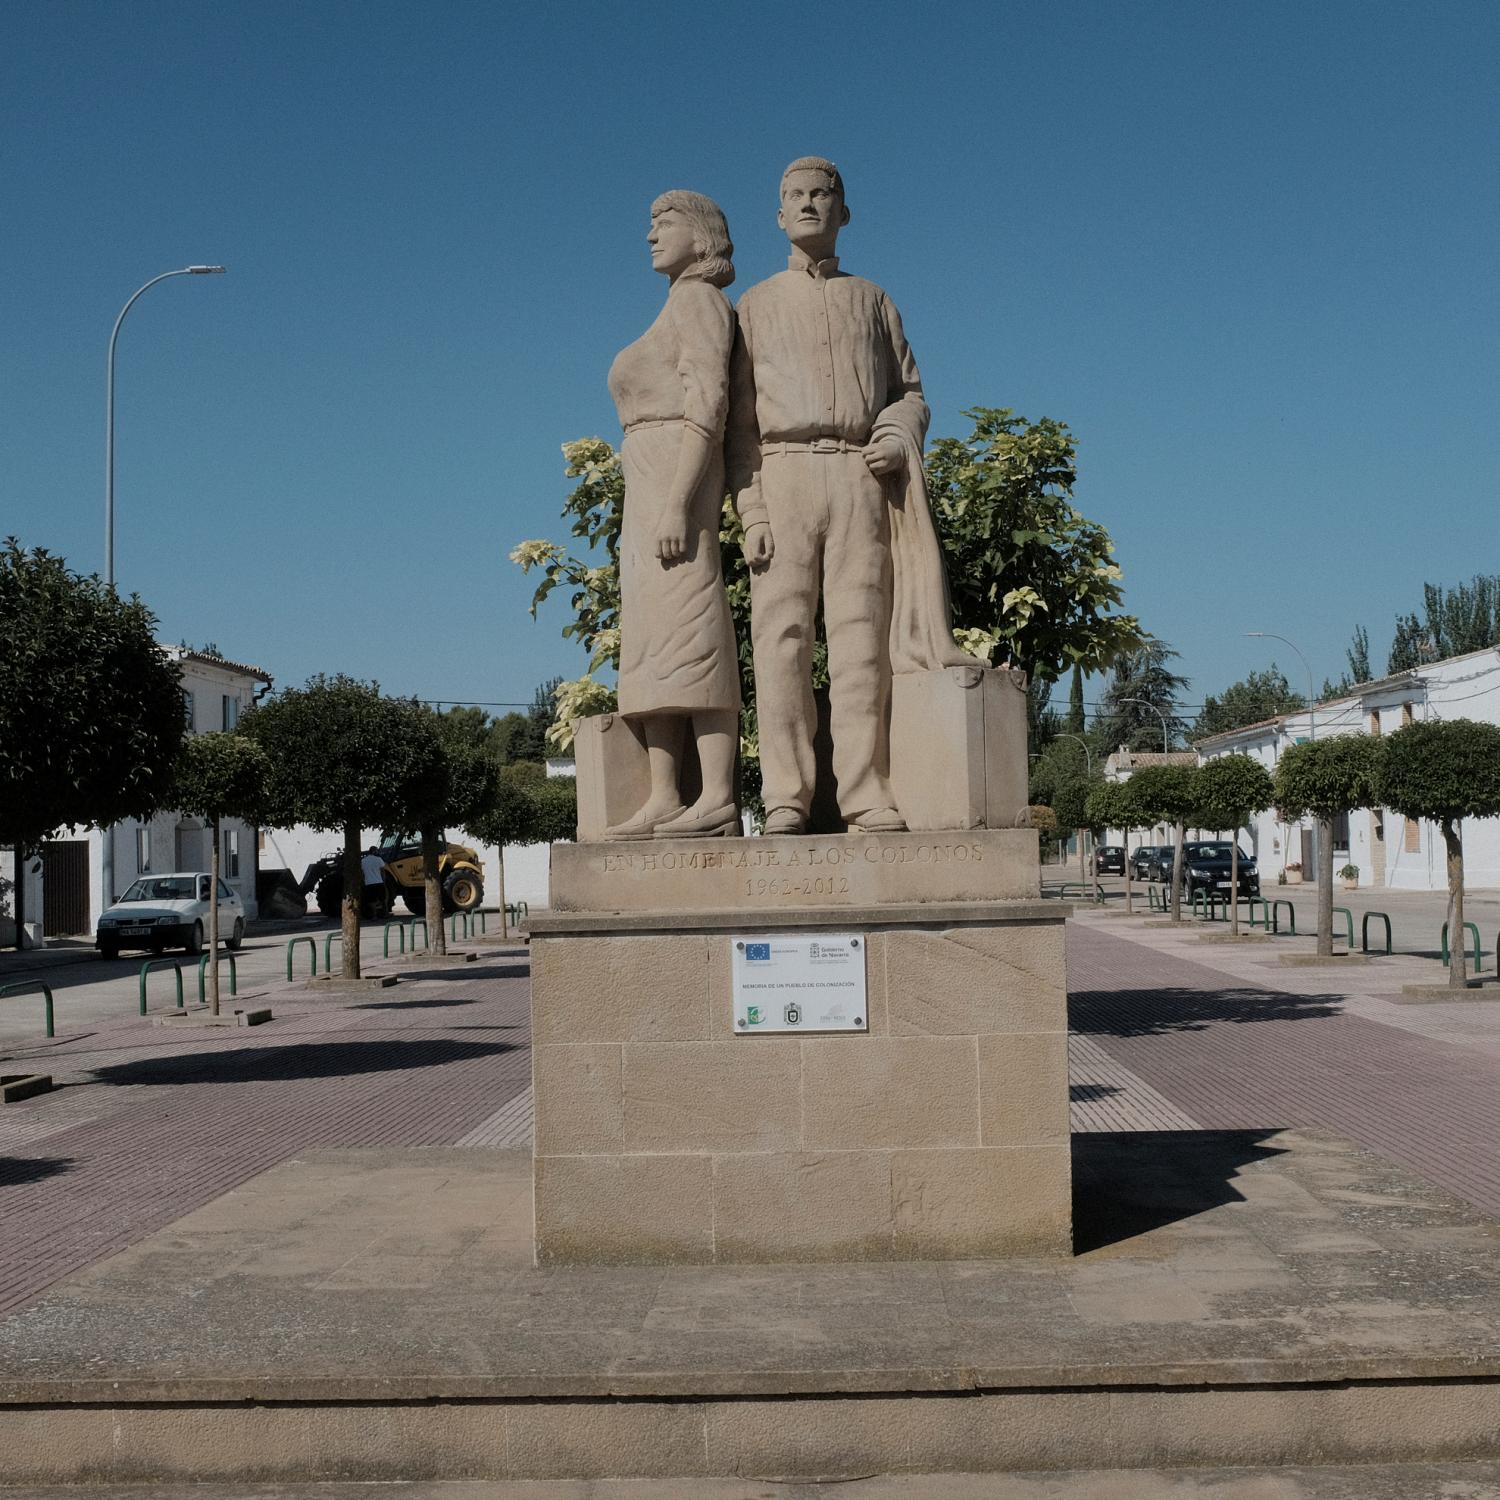 A statue in memory of the first settlers in Figarol (Navarre).After the Spanish civil war in 1936, under Francisco Franco�s dictatorship, an agriculture reform was enforced leading to the building of more than 300 new towns all around Spain. This towns were populated with people coming from other rural impoverished areas but most of them are in high risk of disappearing because the new generations are moving to cities and abandoning these areas. Copyright: Spanish photojournalist Andoni Lubaki.